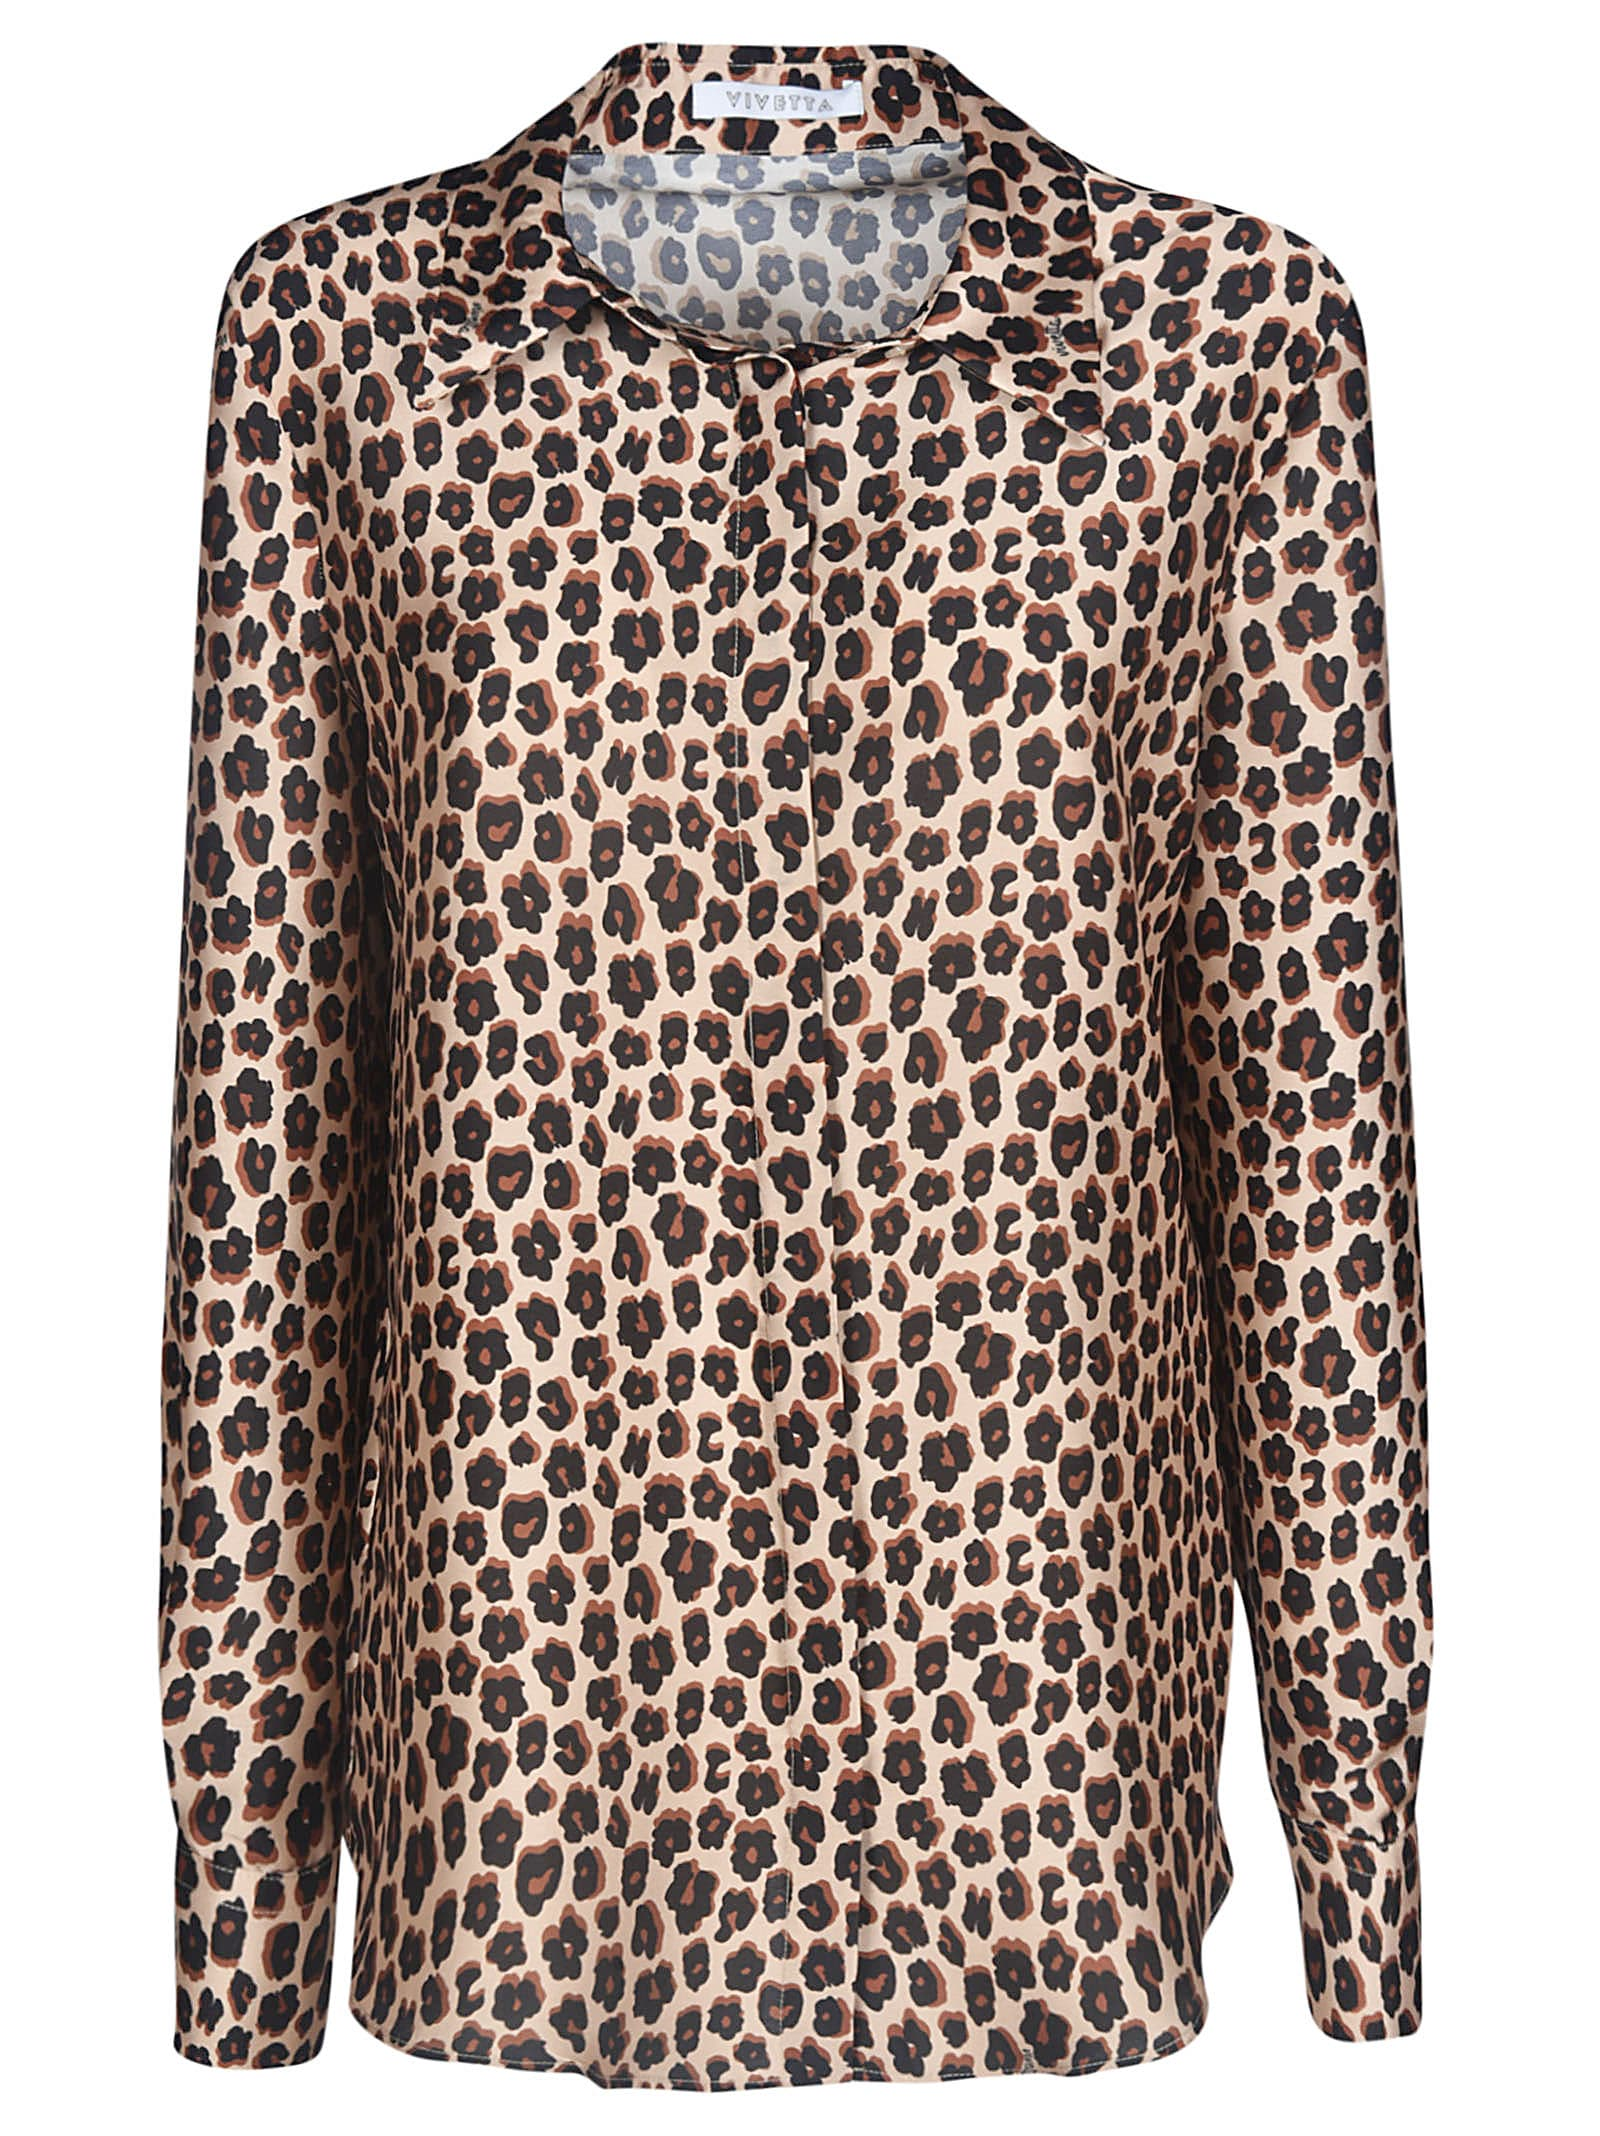 Vivetta PRINTED ALL-OVER SHIRT